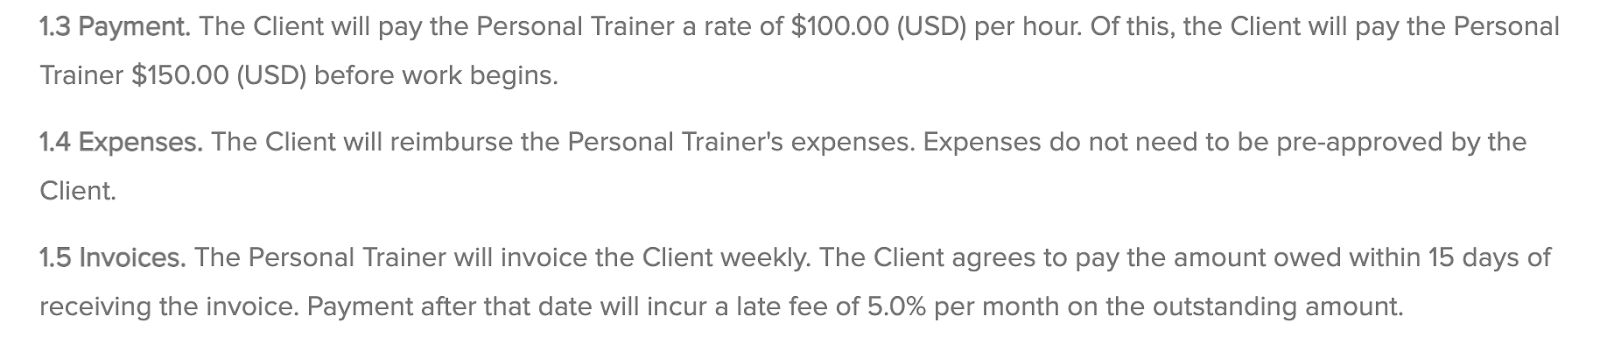 sample payment details in personal trainer contract